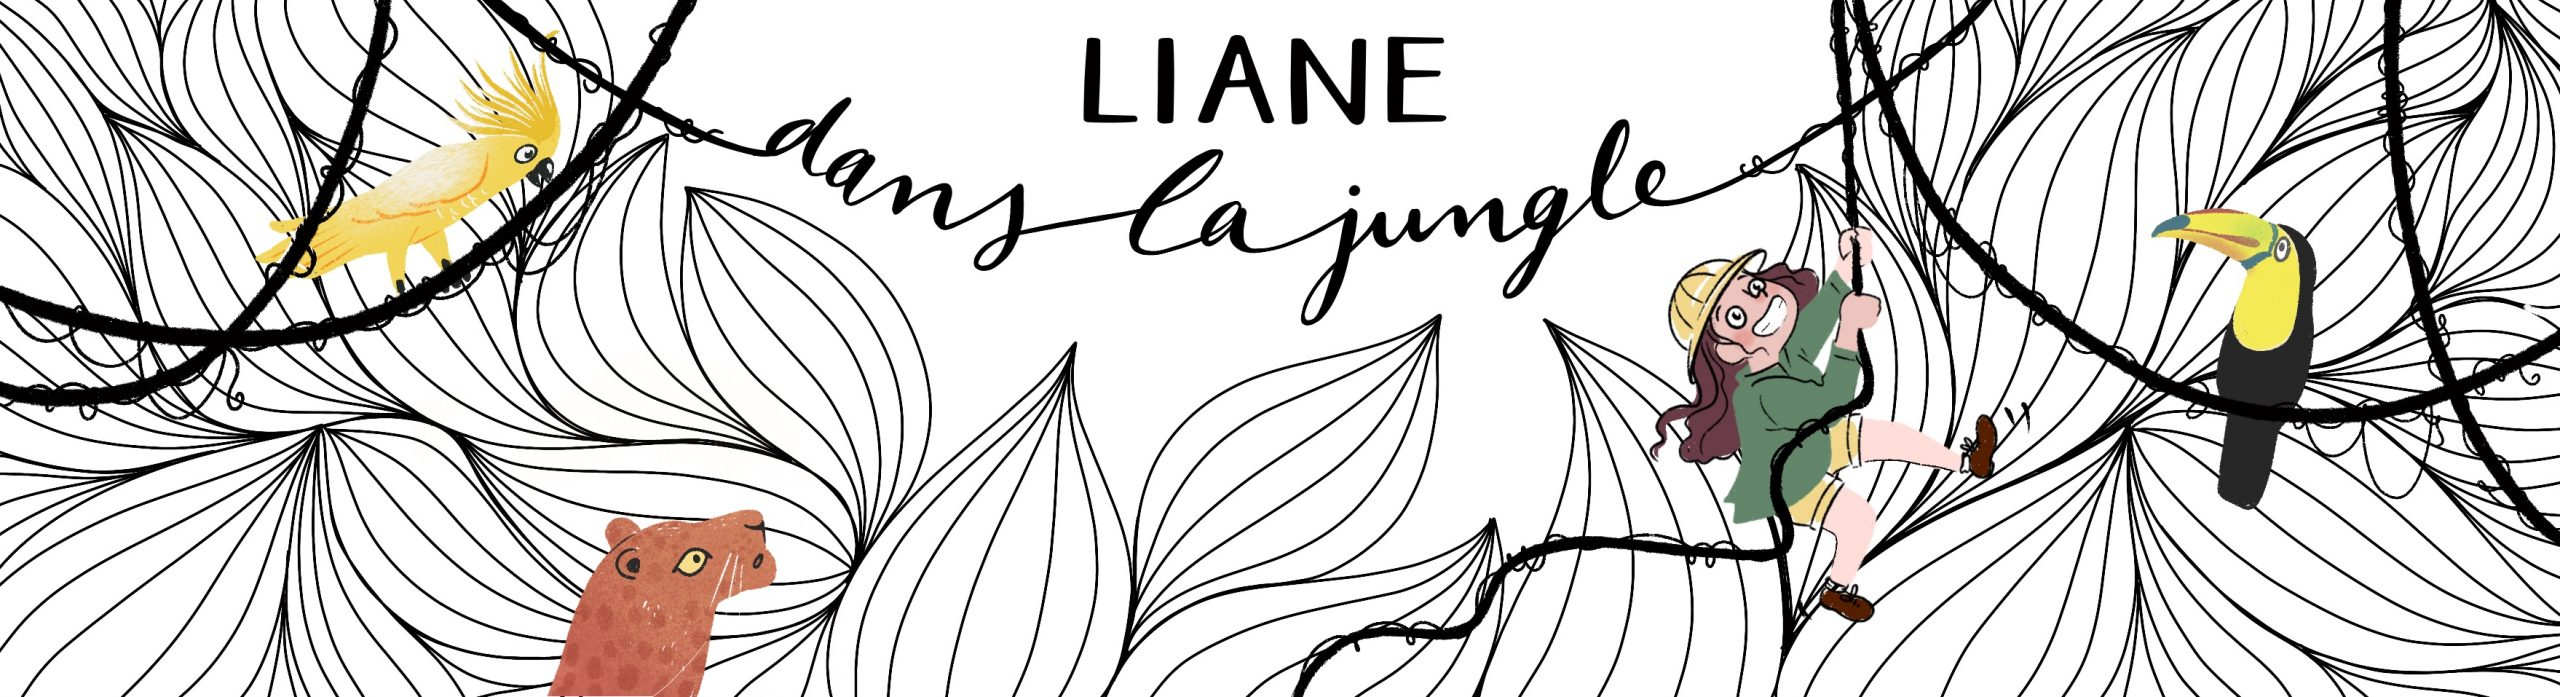 Liane dans la jungle